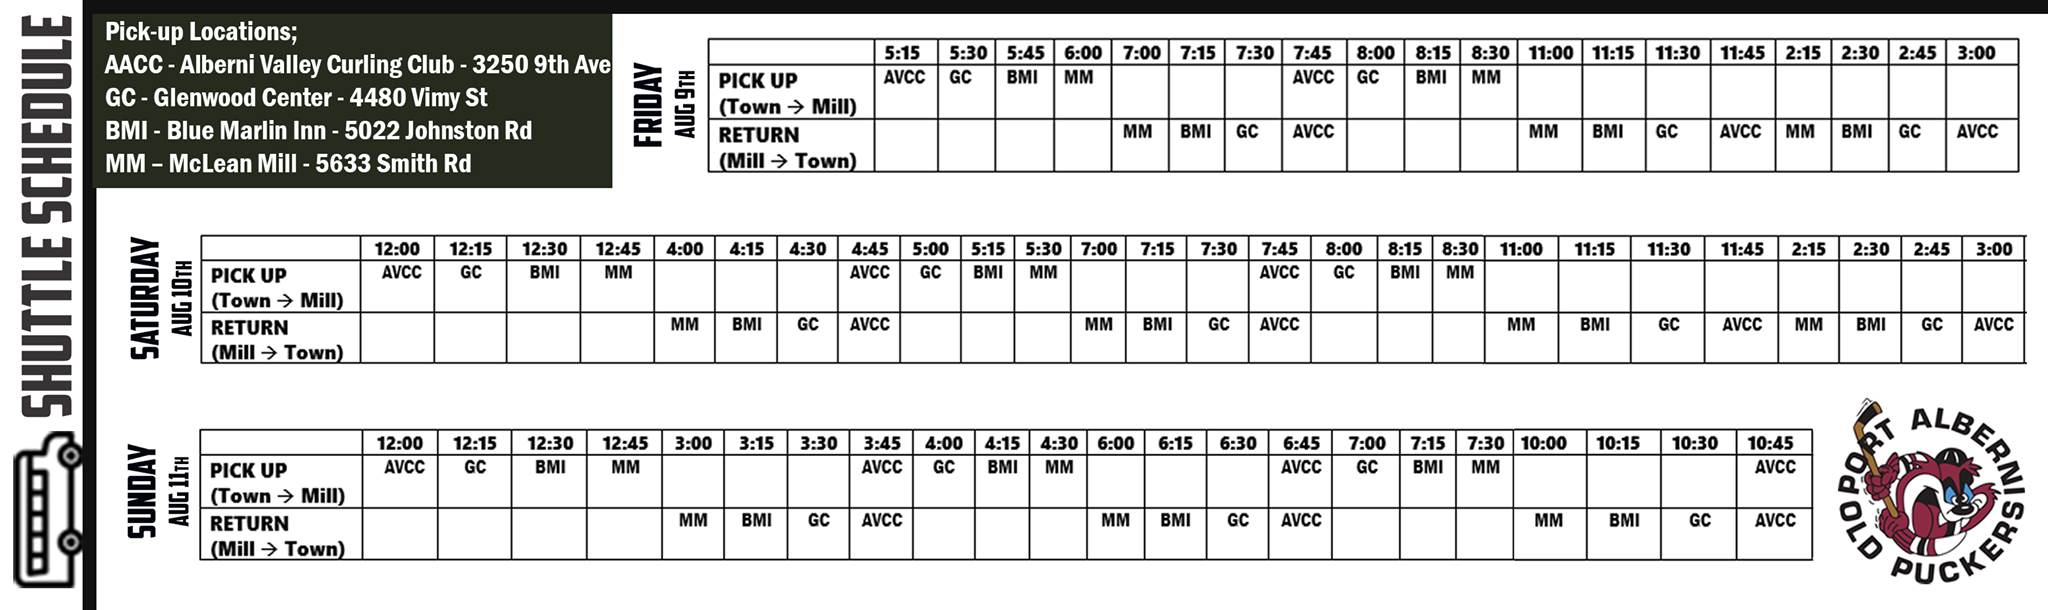 Table of Shuttle Times